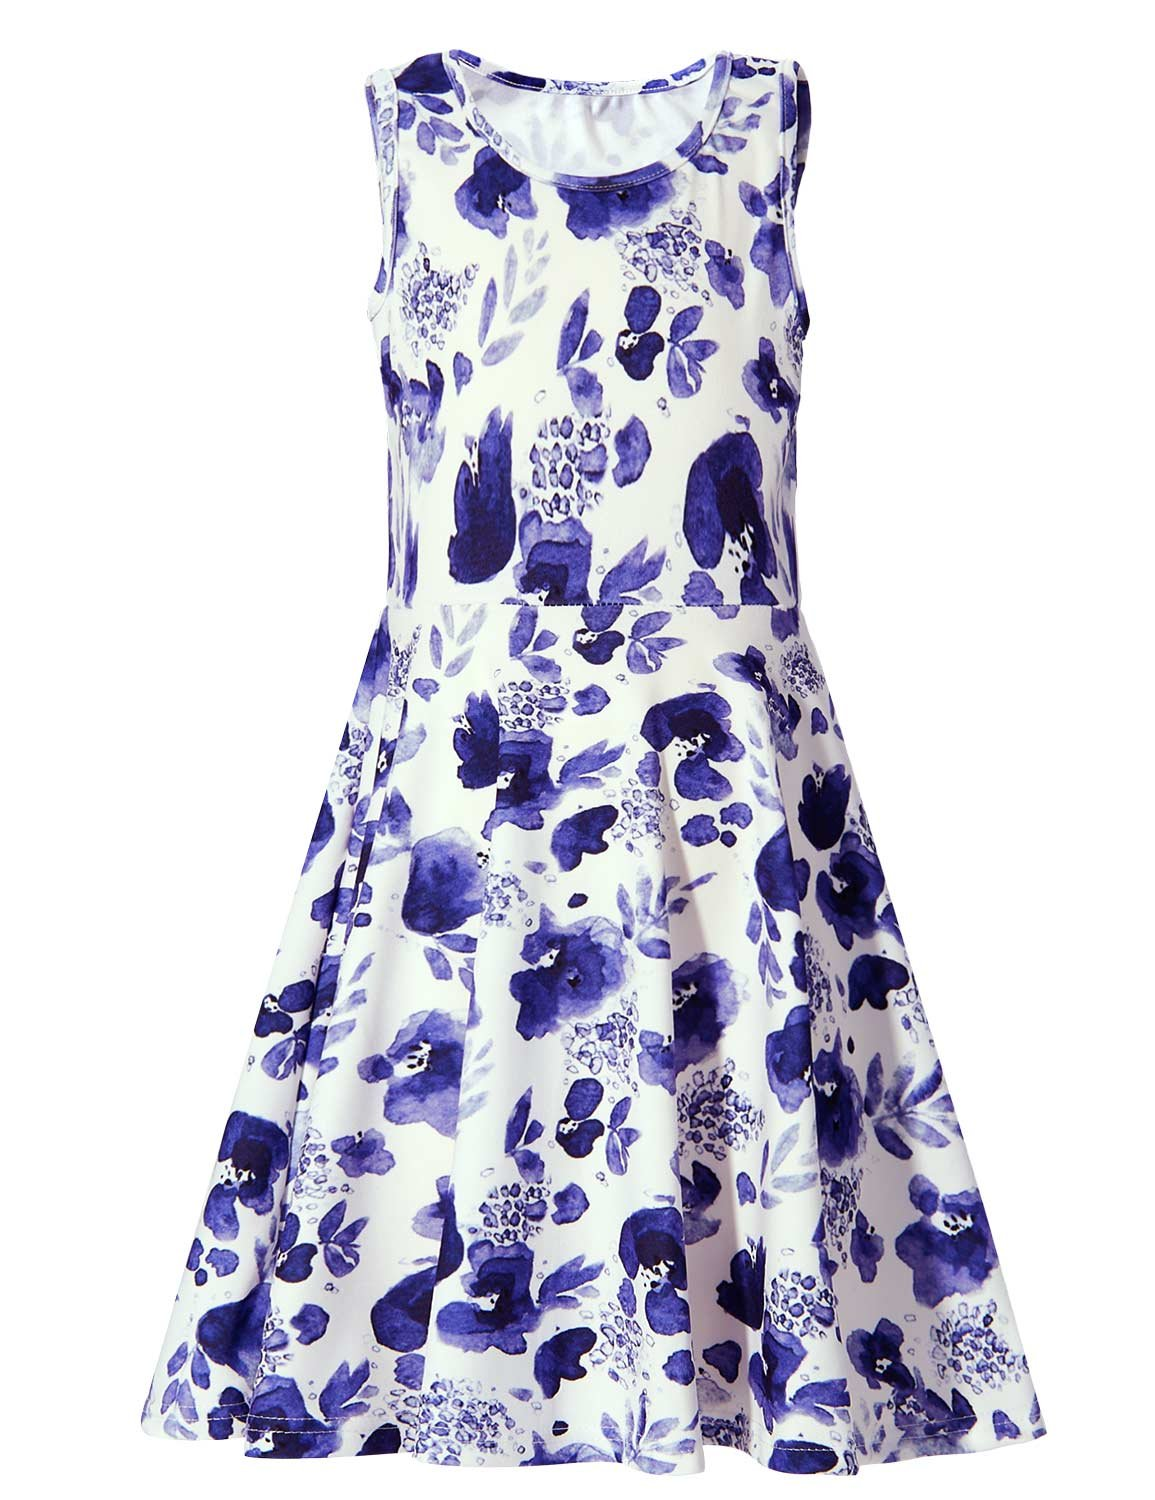 BFUSTYLE Blue White Flower Vintage Dresses for 9 Year Old,Fashoin Little Girls Crew-Neck Skater Playwear Dress Sleeveless Floral Dress in Summer (L,Blue White Flower)